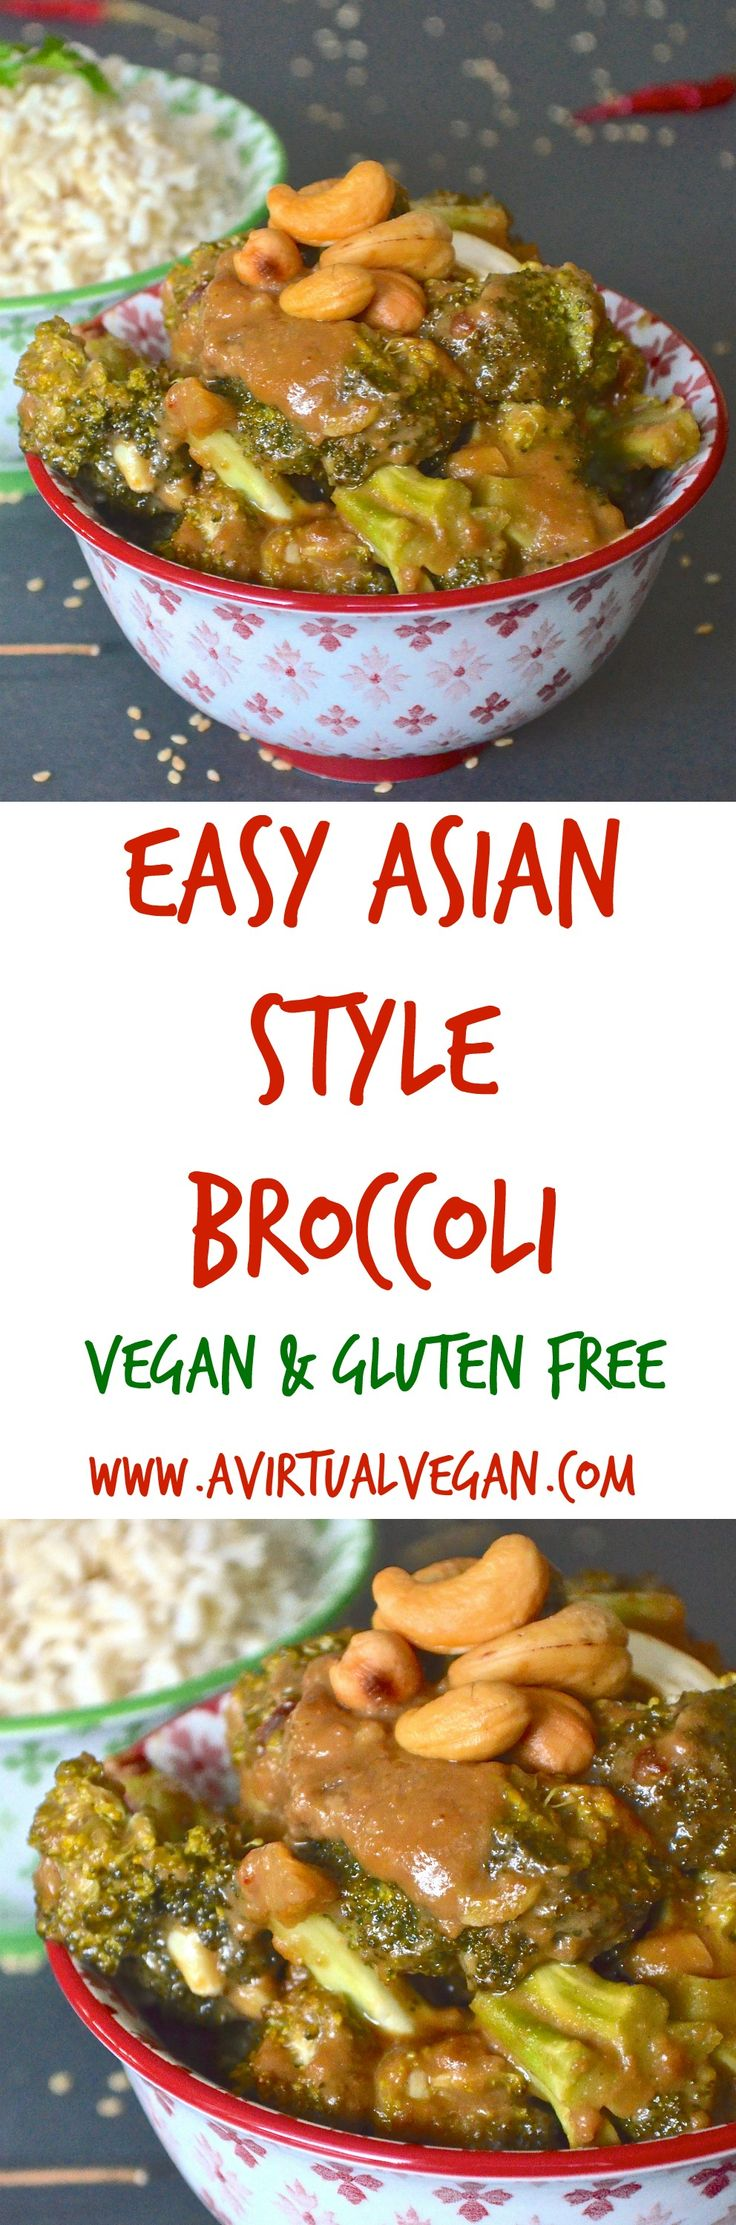 Tender broccoli smothered in a rich, thick Asian style sauce. Insanely simple to make, ready in less than 30 minutes and full of flavour.